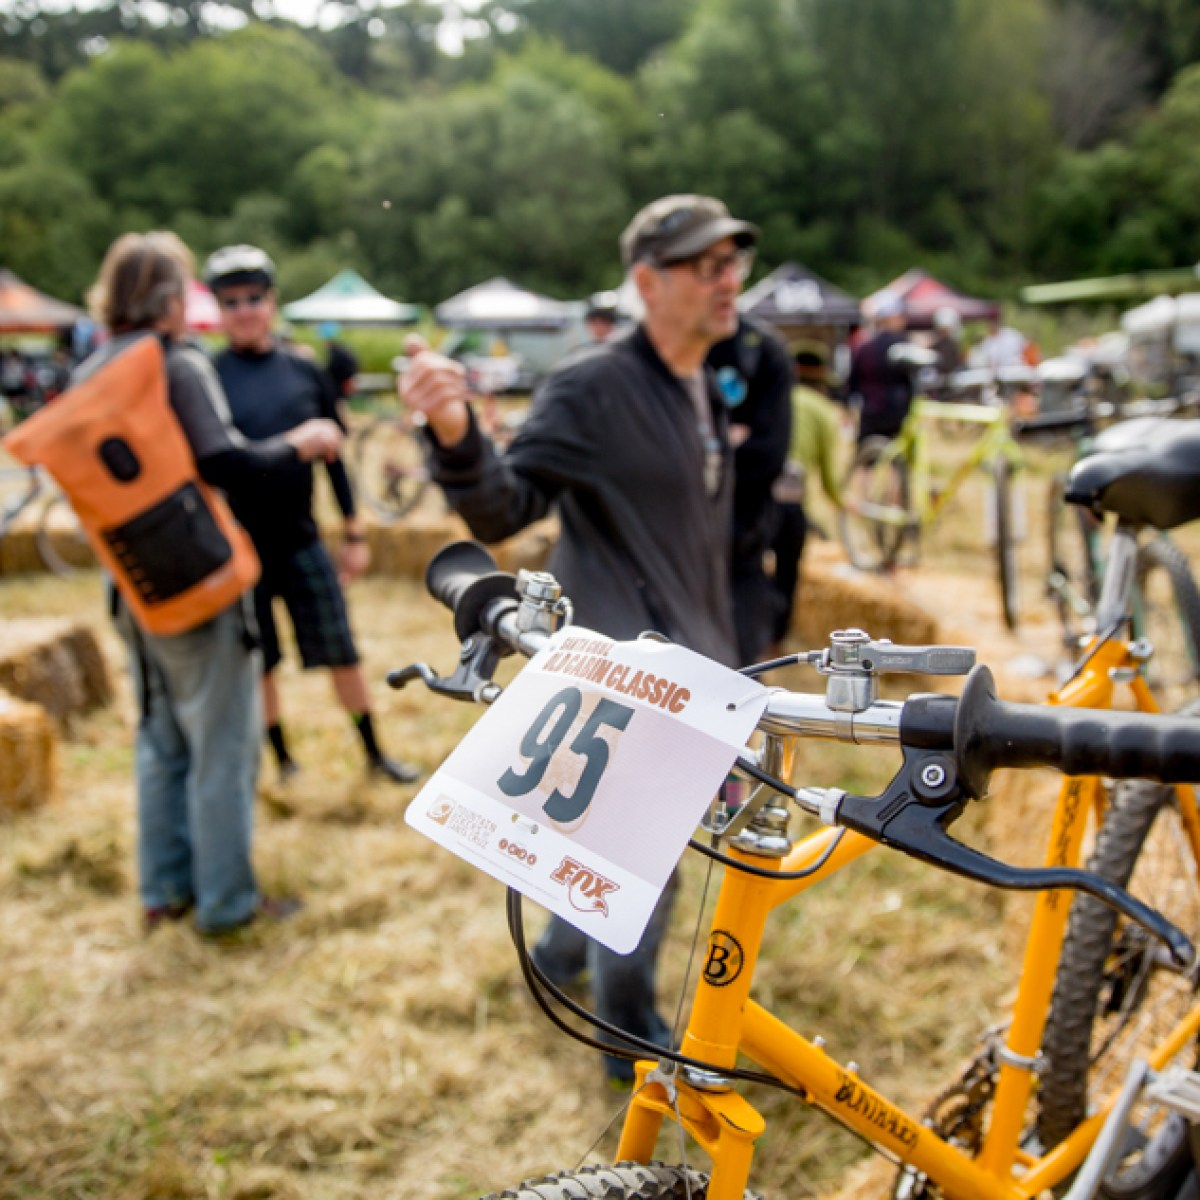 Vintage Racing at the Old Cabin Classic | BIKE Magazine